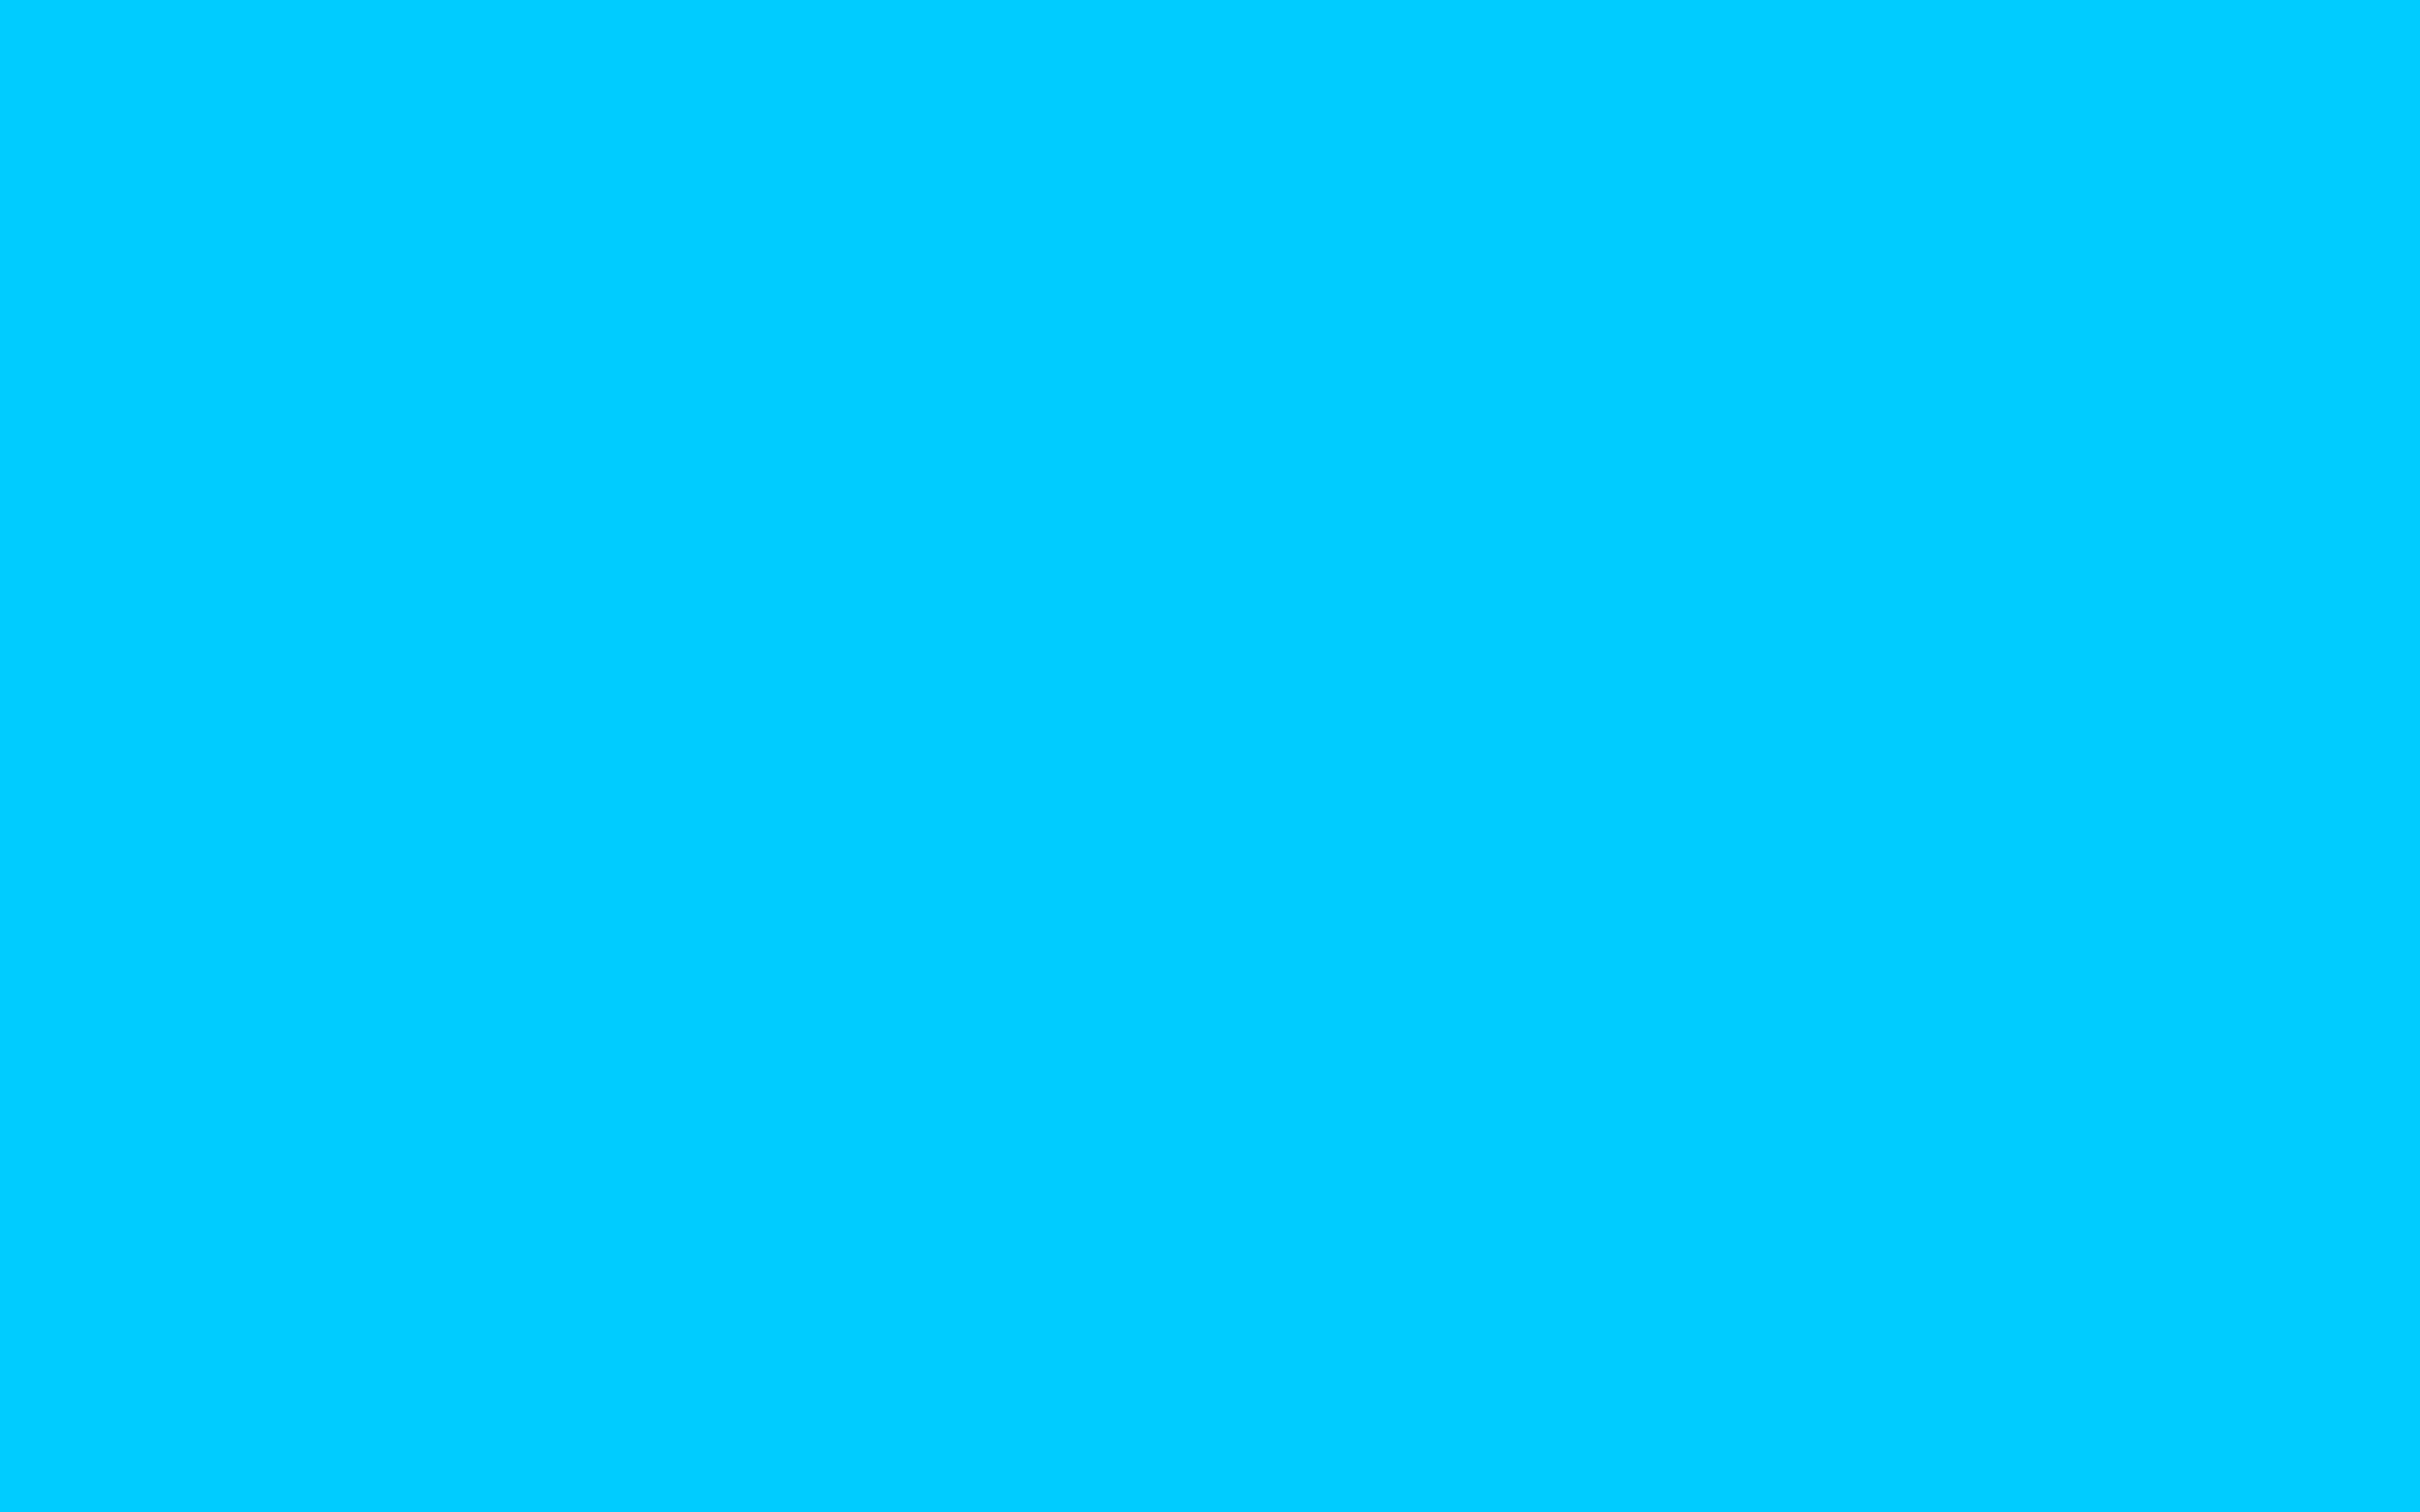 Res: 2880x1800, Title : sky blue backgrounds - wallpaper cave. Dimension : 2880 x 1800.  File Type : JPG/JPEG